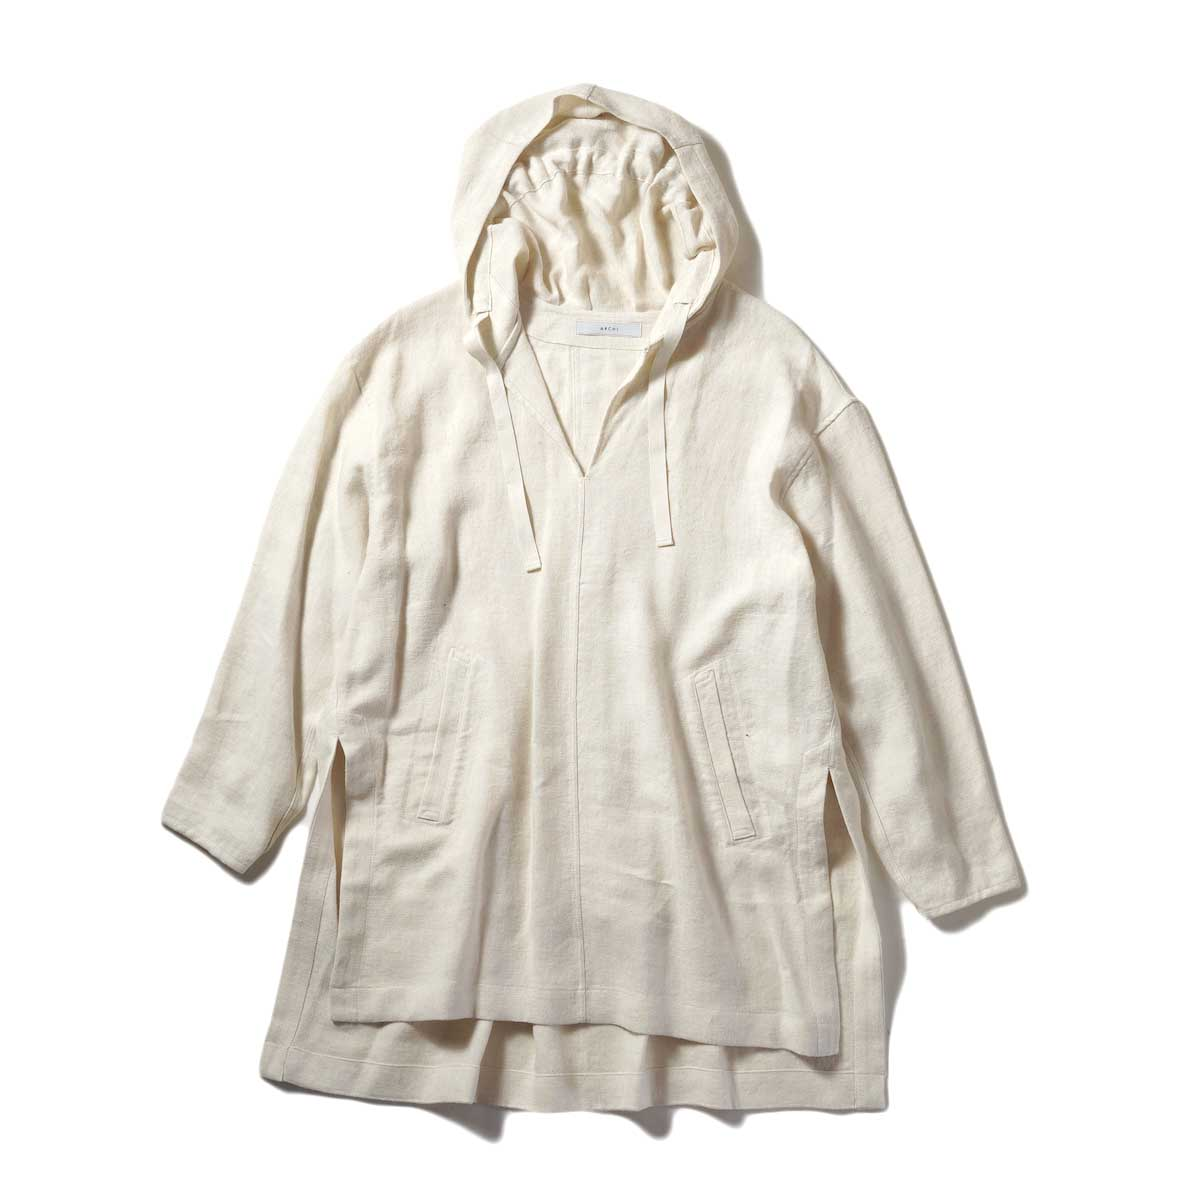 ARCHI / SOFT TWIST TWILL HOODIE OVER SHIRTS (White) 正面